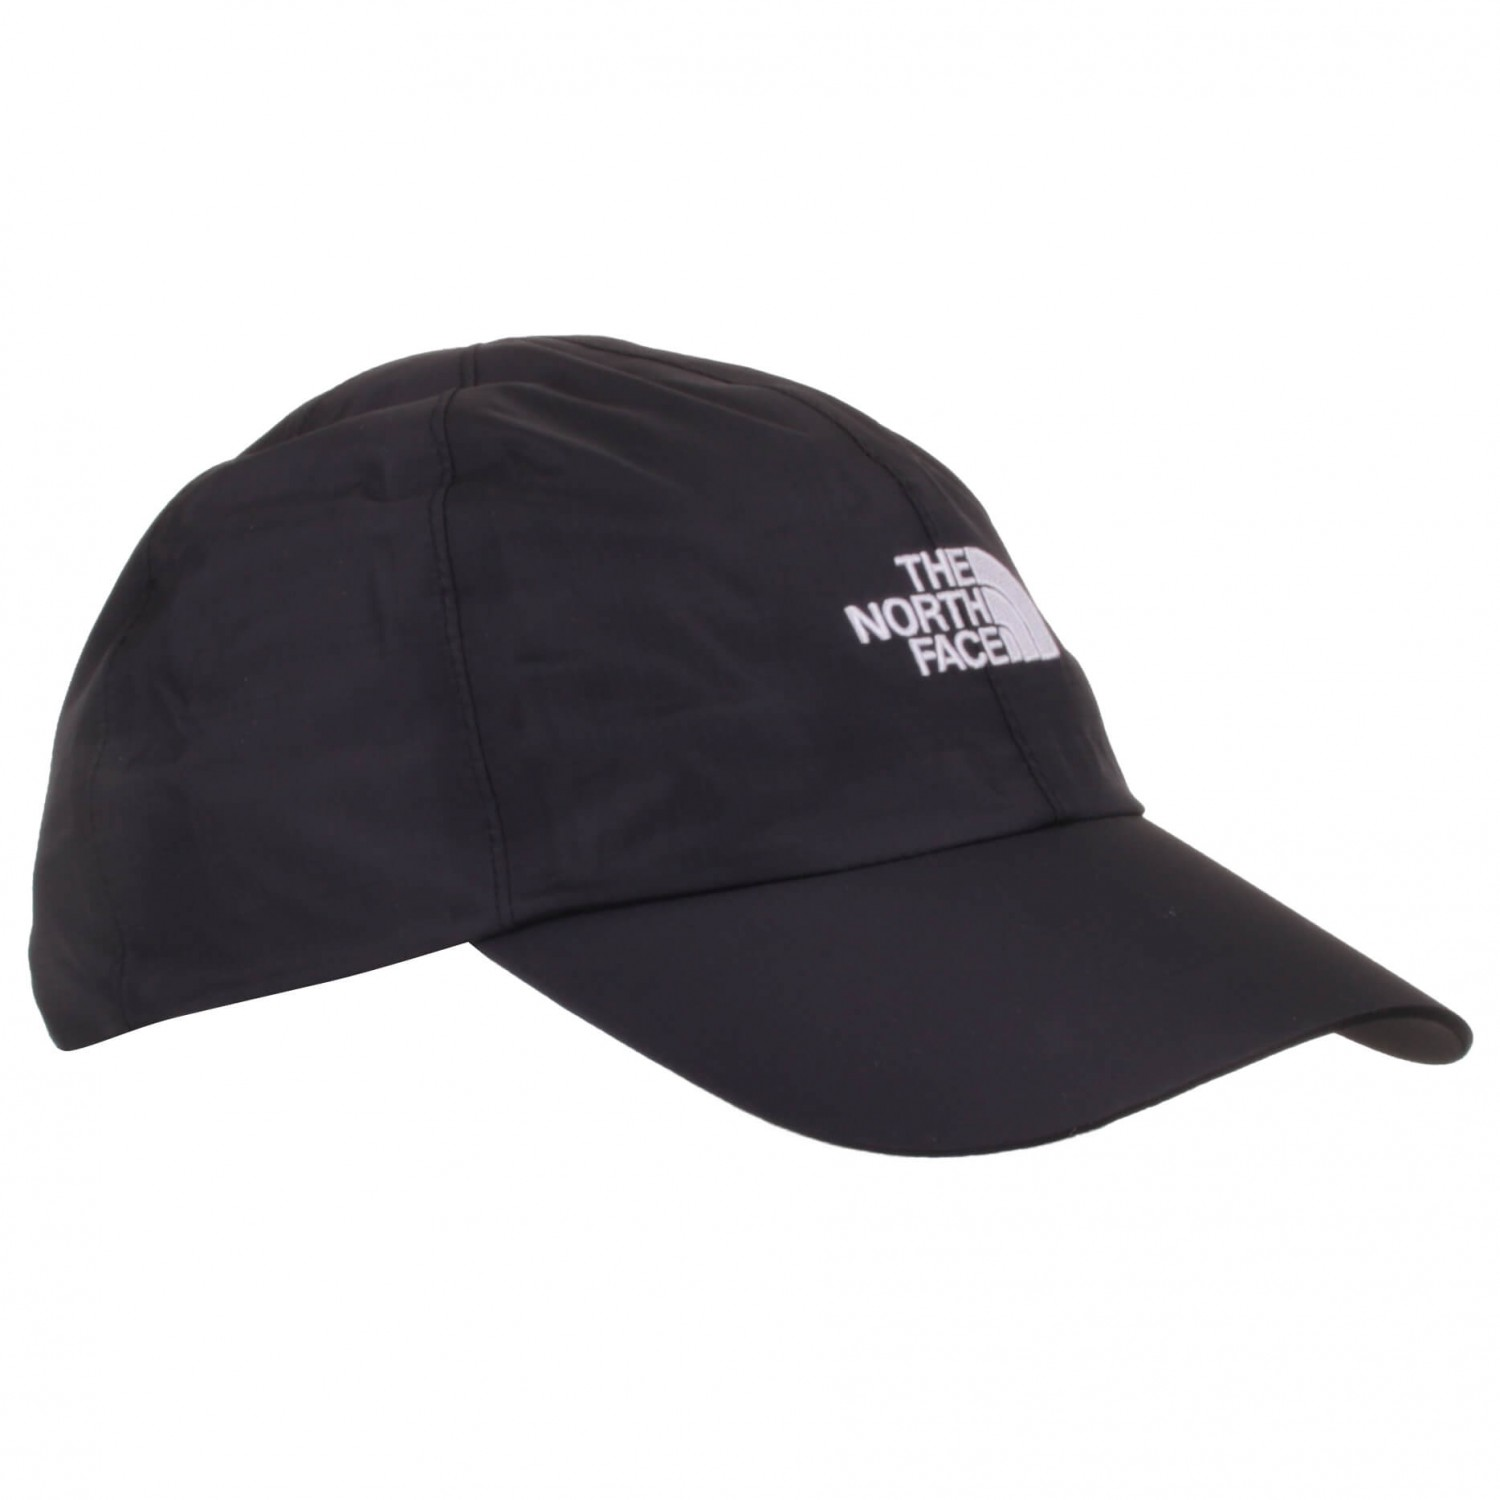 6f96f9c3 The North Face Dryvent Logo Hat - Cap | Buy online | Alpinetrek.co.uk